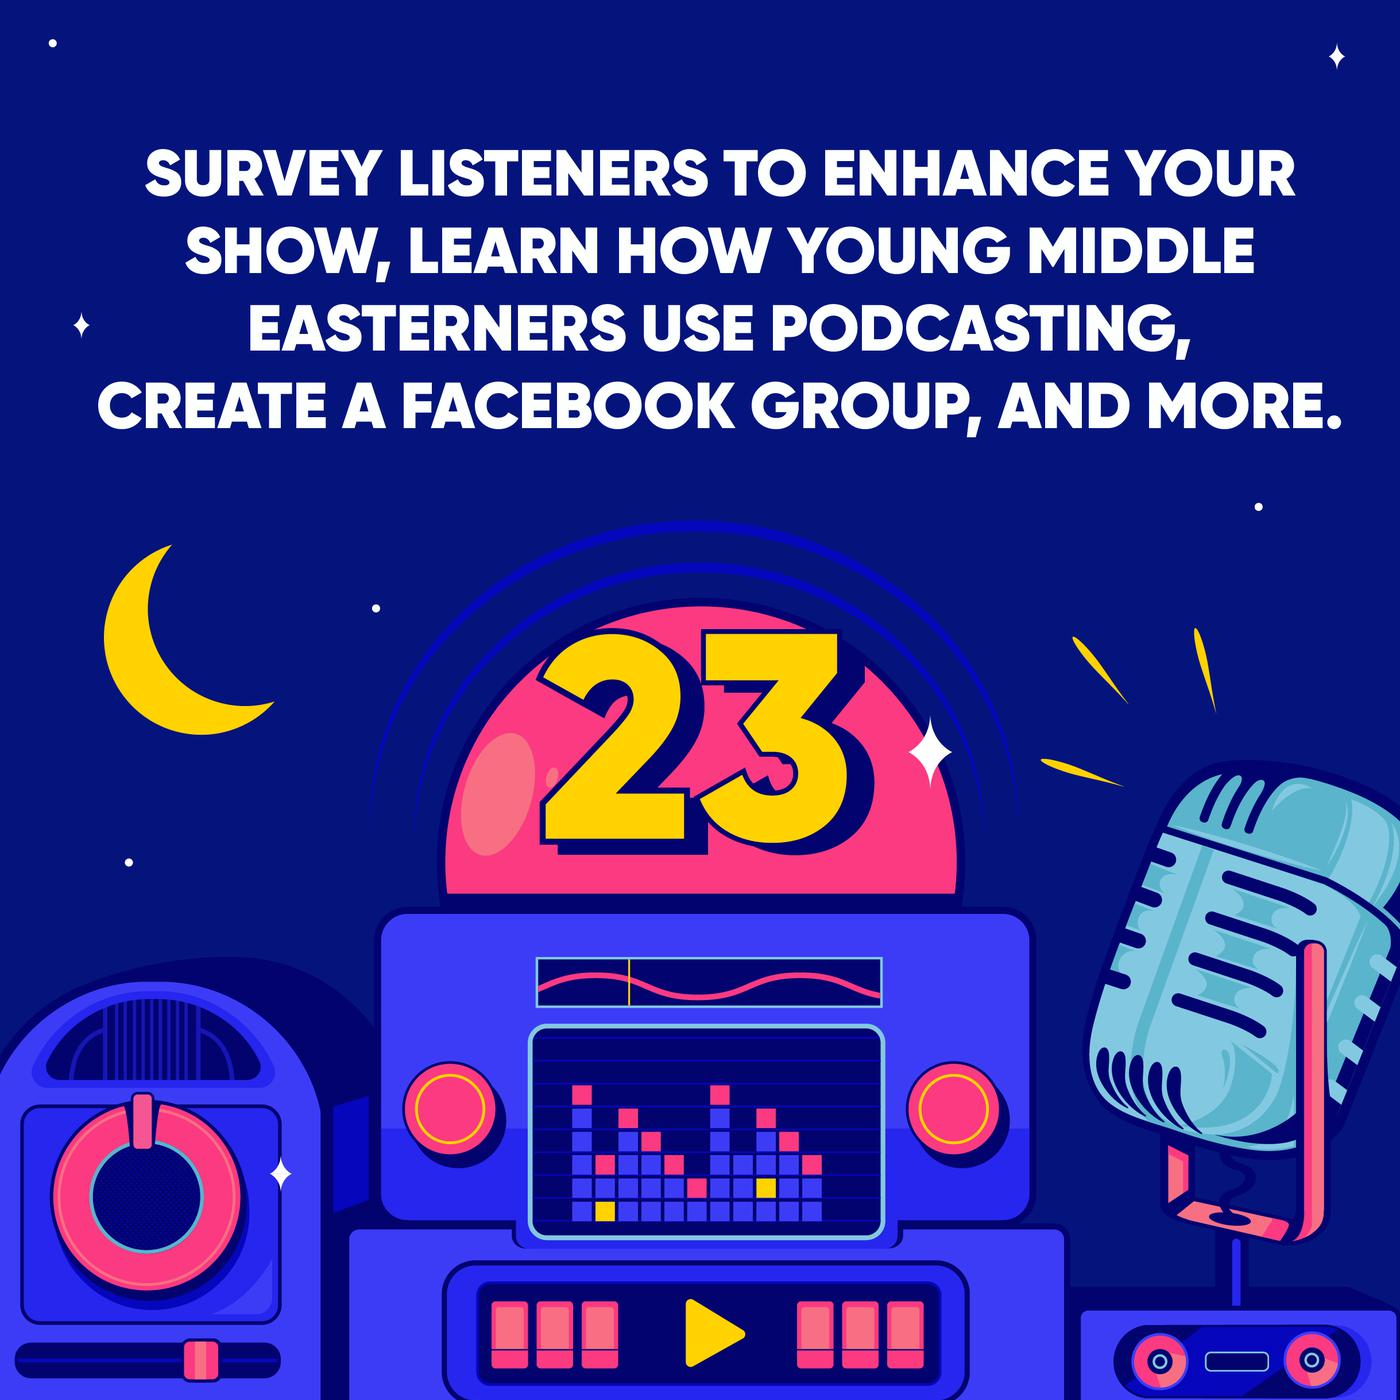 Survey Listeners to Enhance your Show, Learn how Young Middle Easterners use Podcasting, Create a Facebook Group, and More.